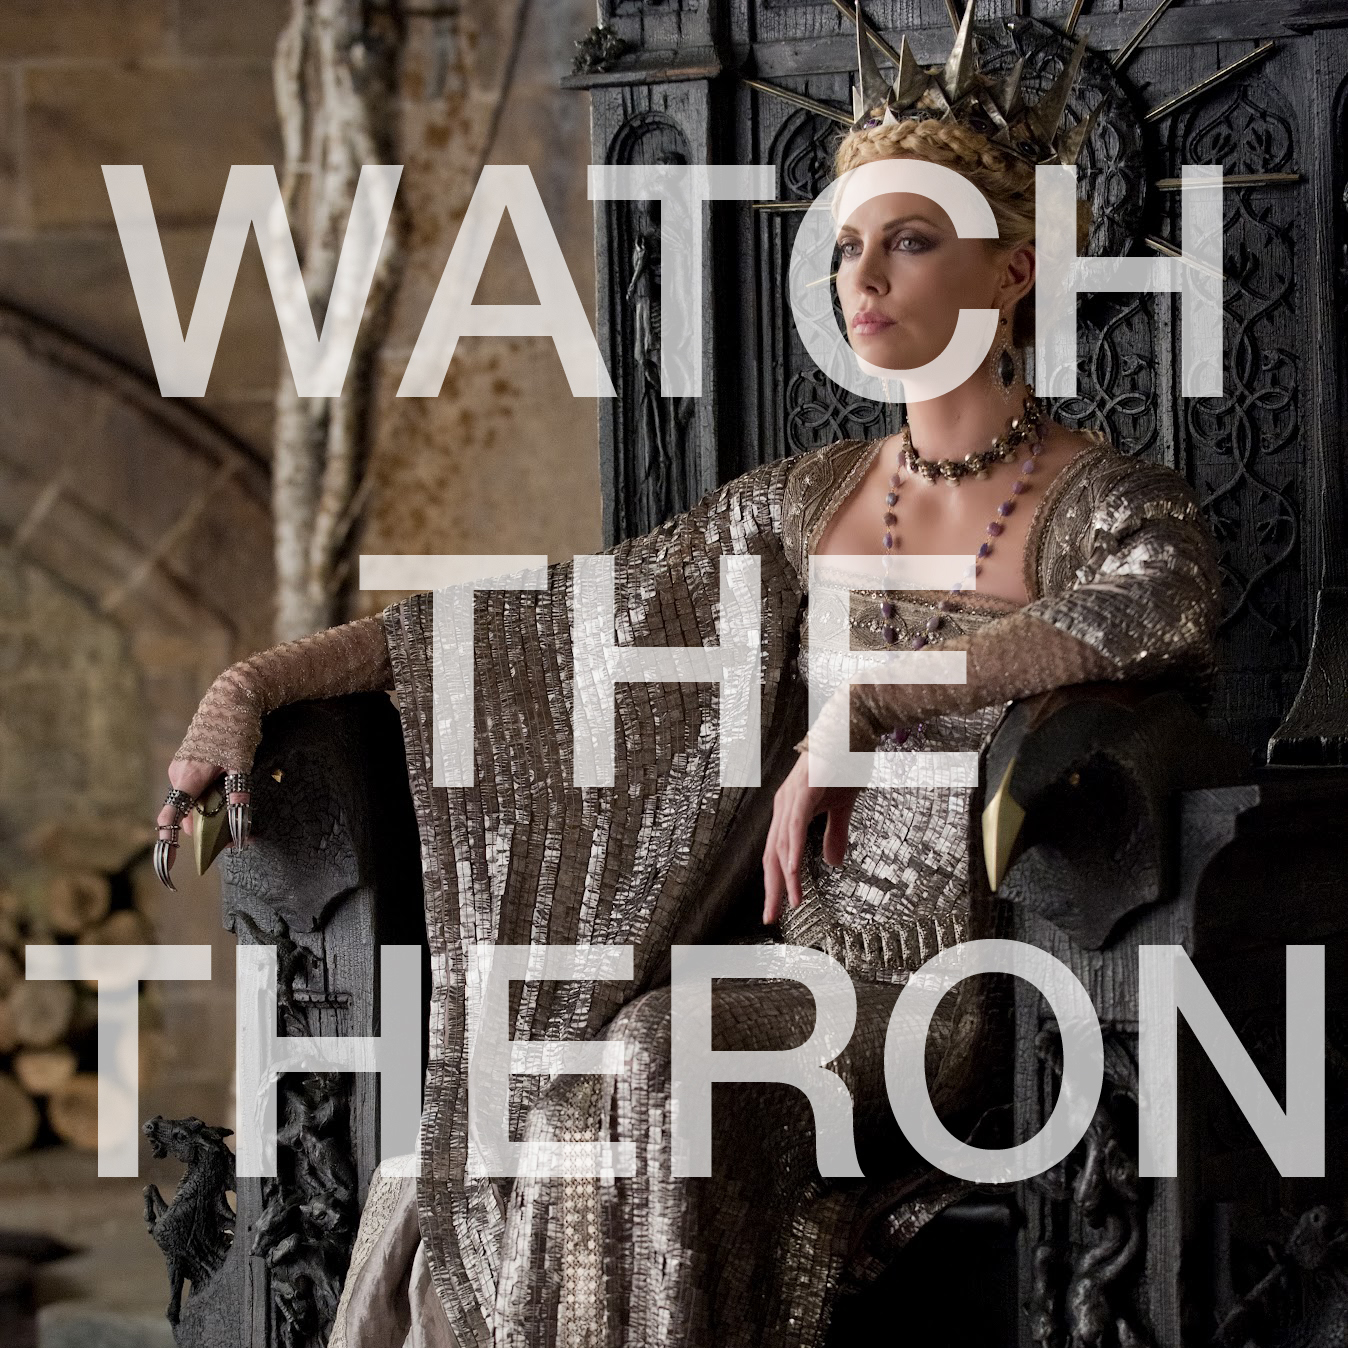 Watch The Theron